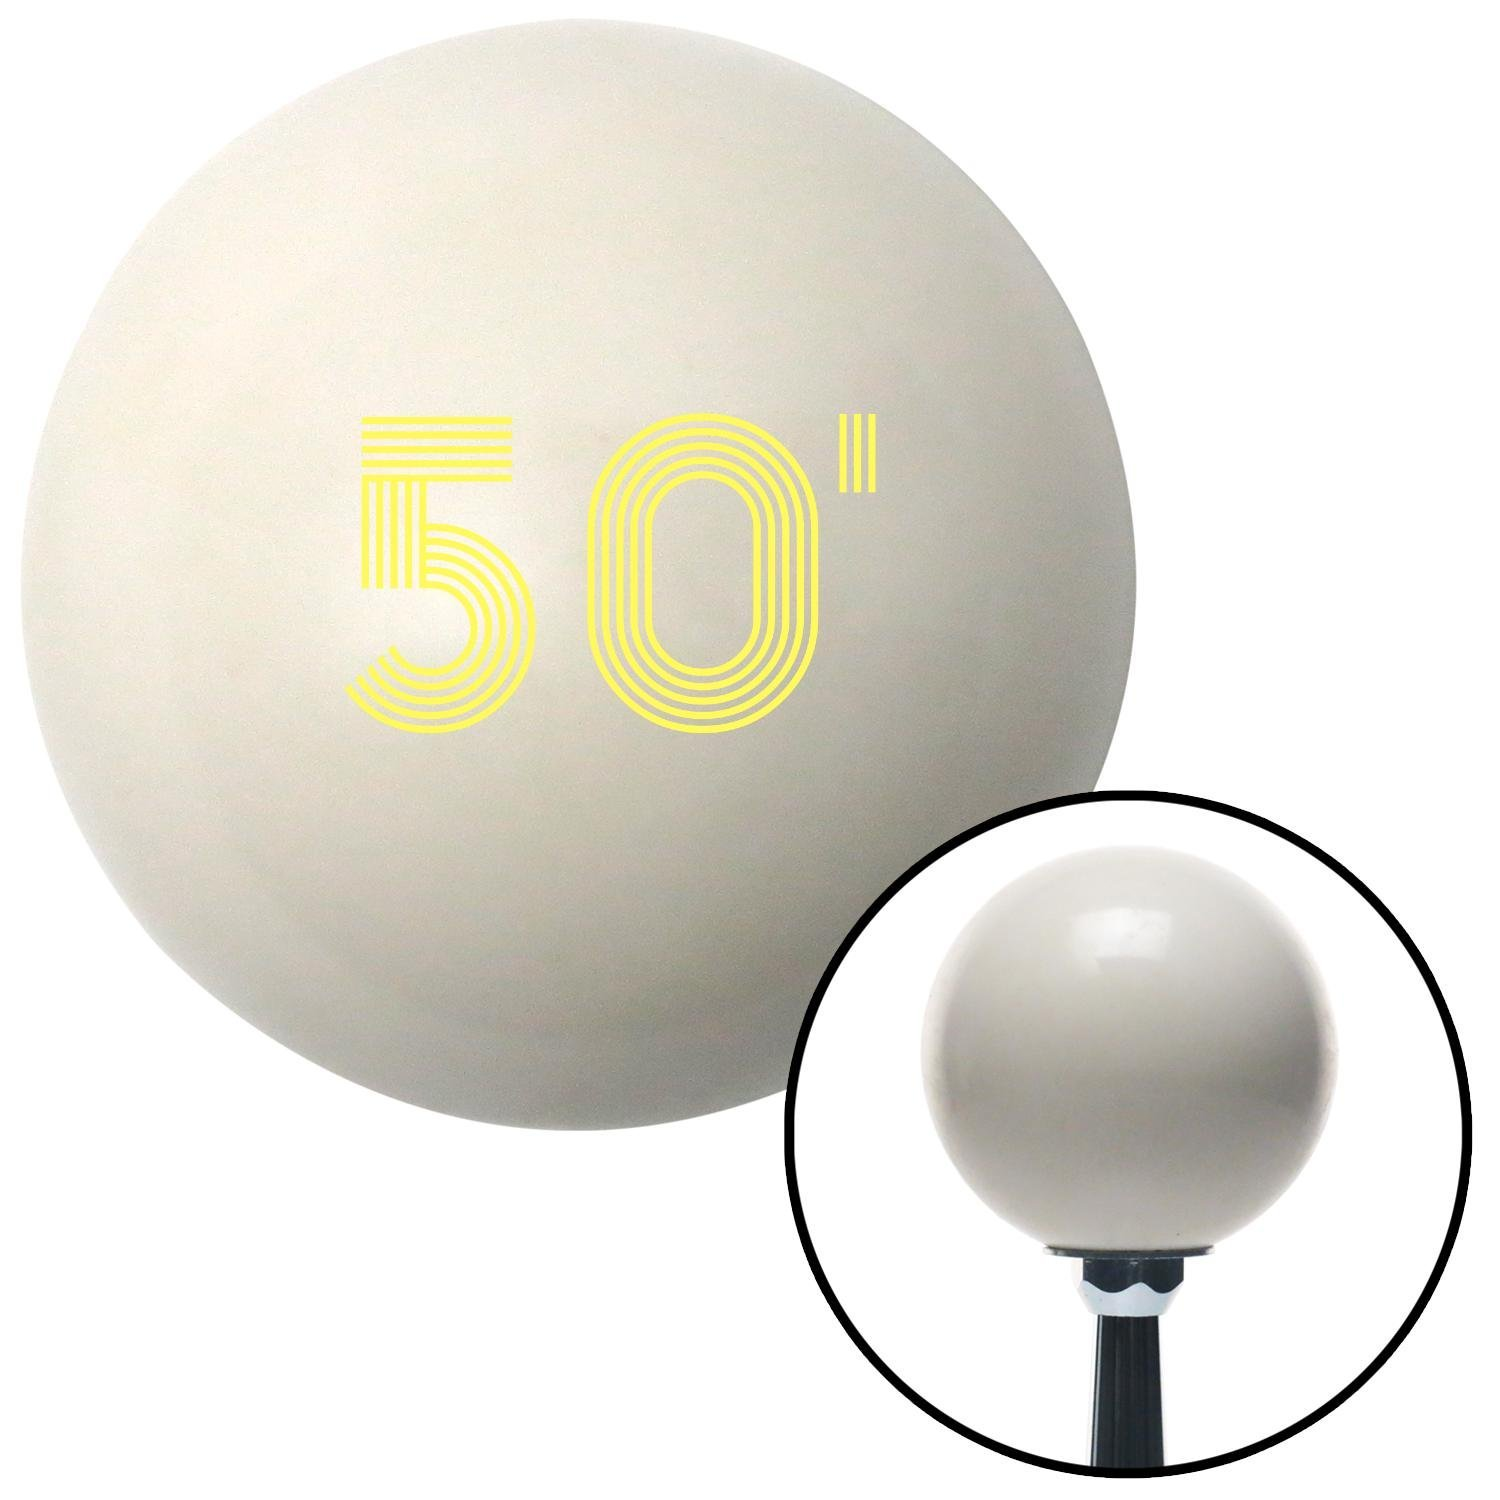 American Shifter 142453 Ivory Shift Knob with M16 x 1.5 Insert Yellow 50 Year Retro Series